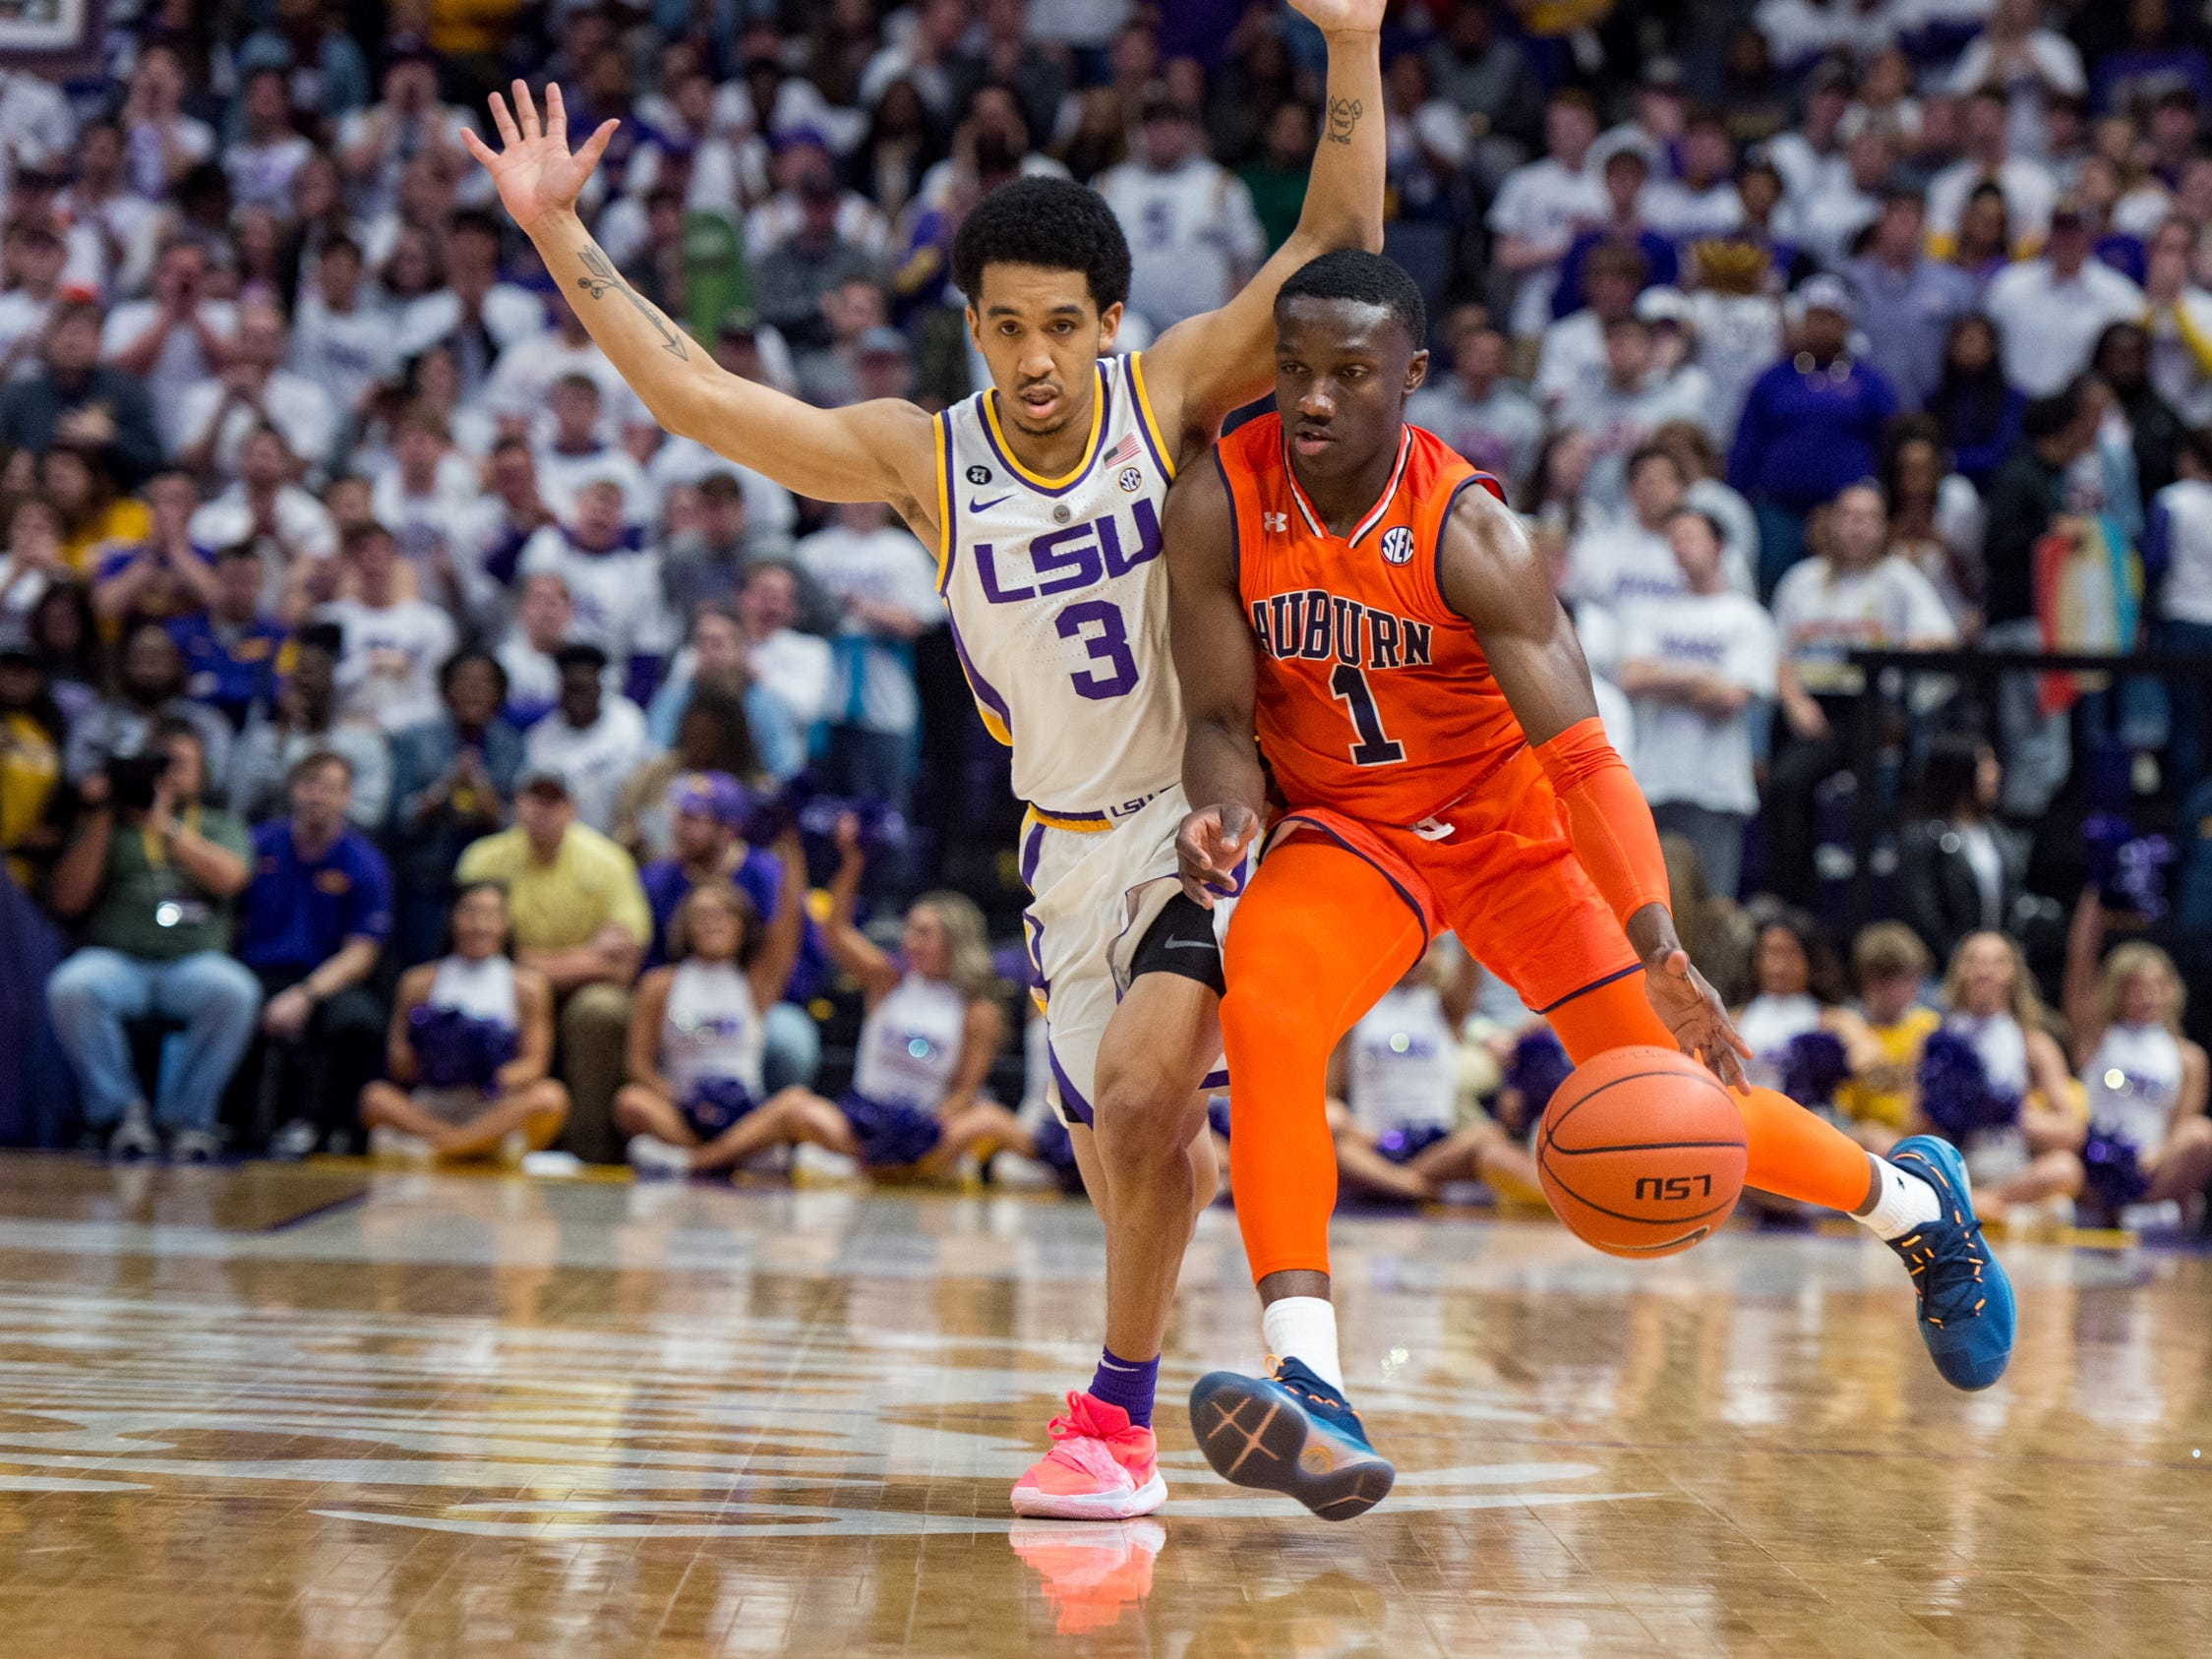 Jared Harper drives the ball downcourt and defended by Tremont Waters as the LSU Tigers take down the Auburn Tigers 83-78. Saturday, Feb. 9, 2019.